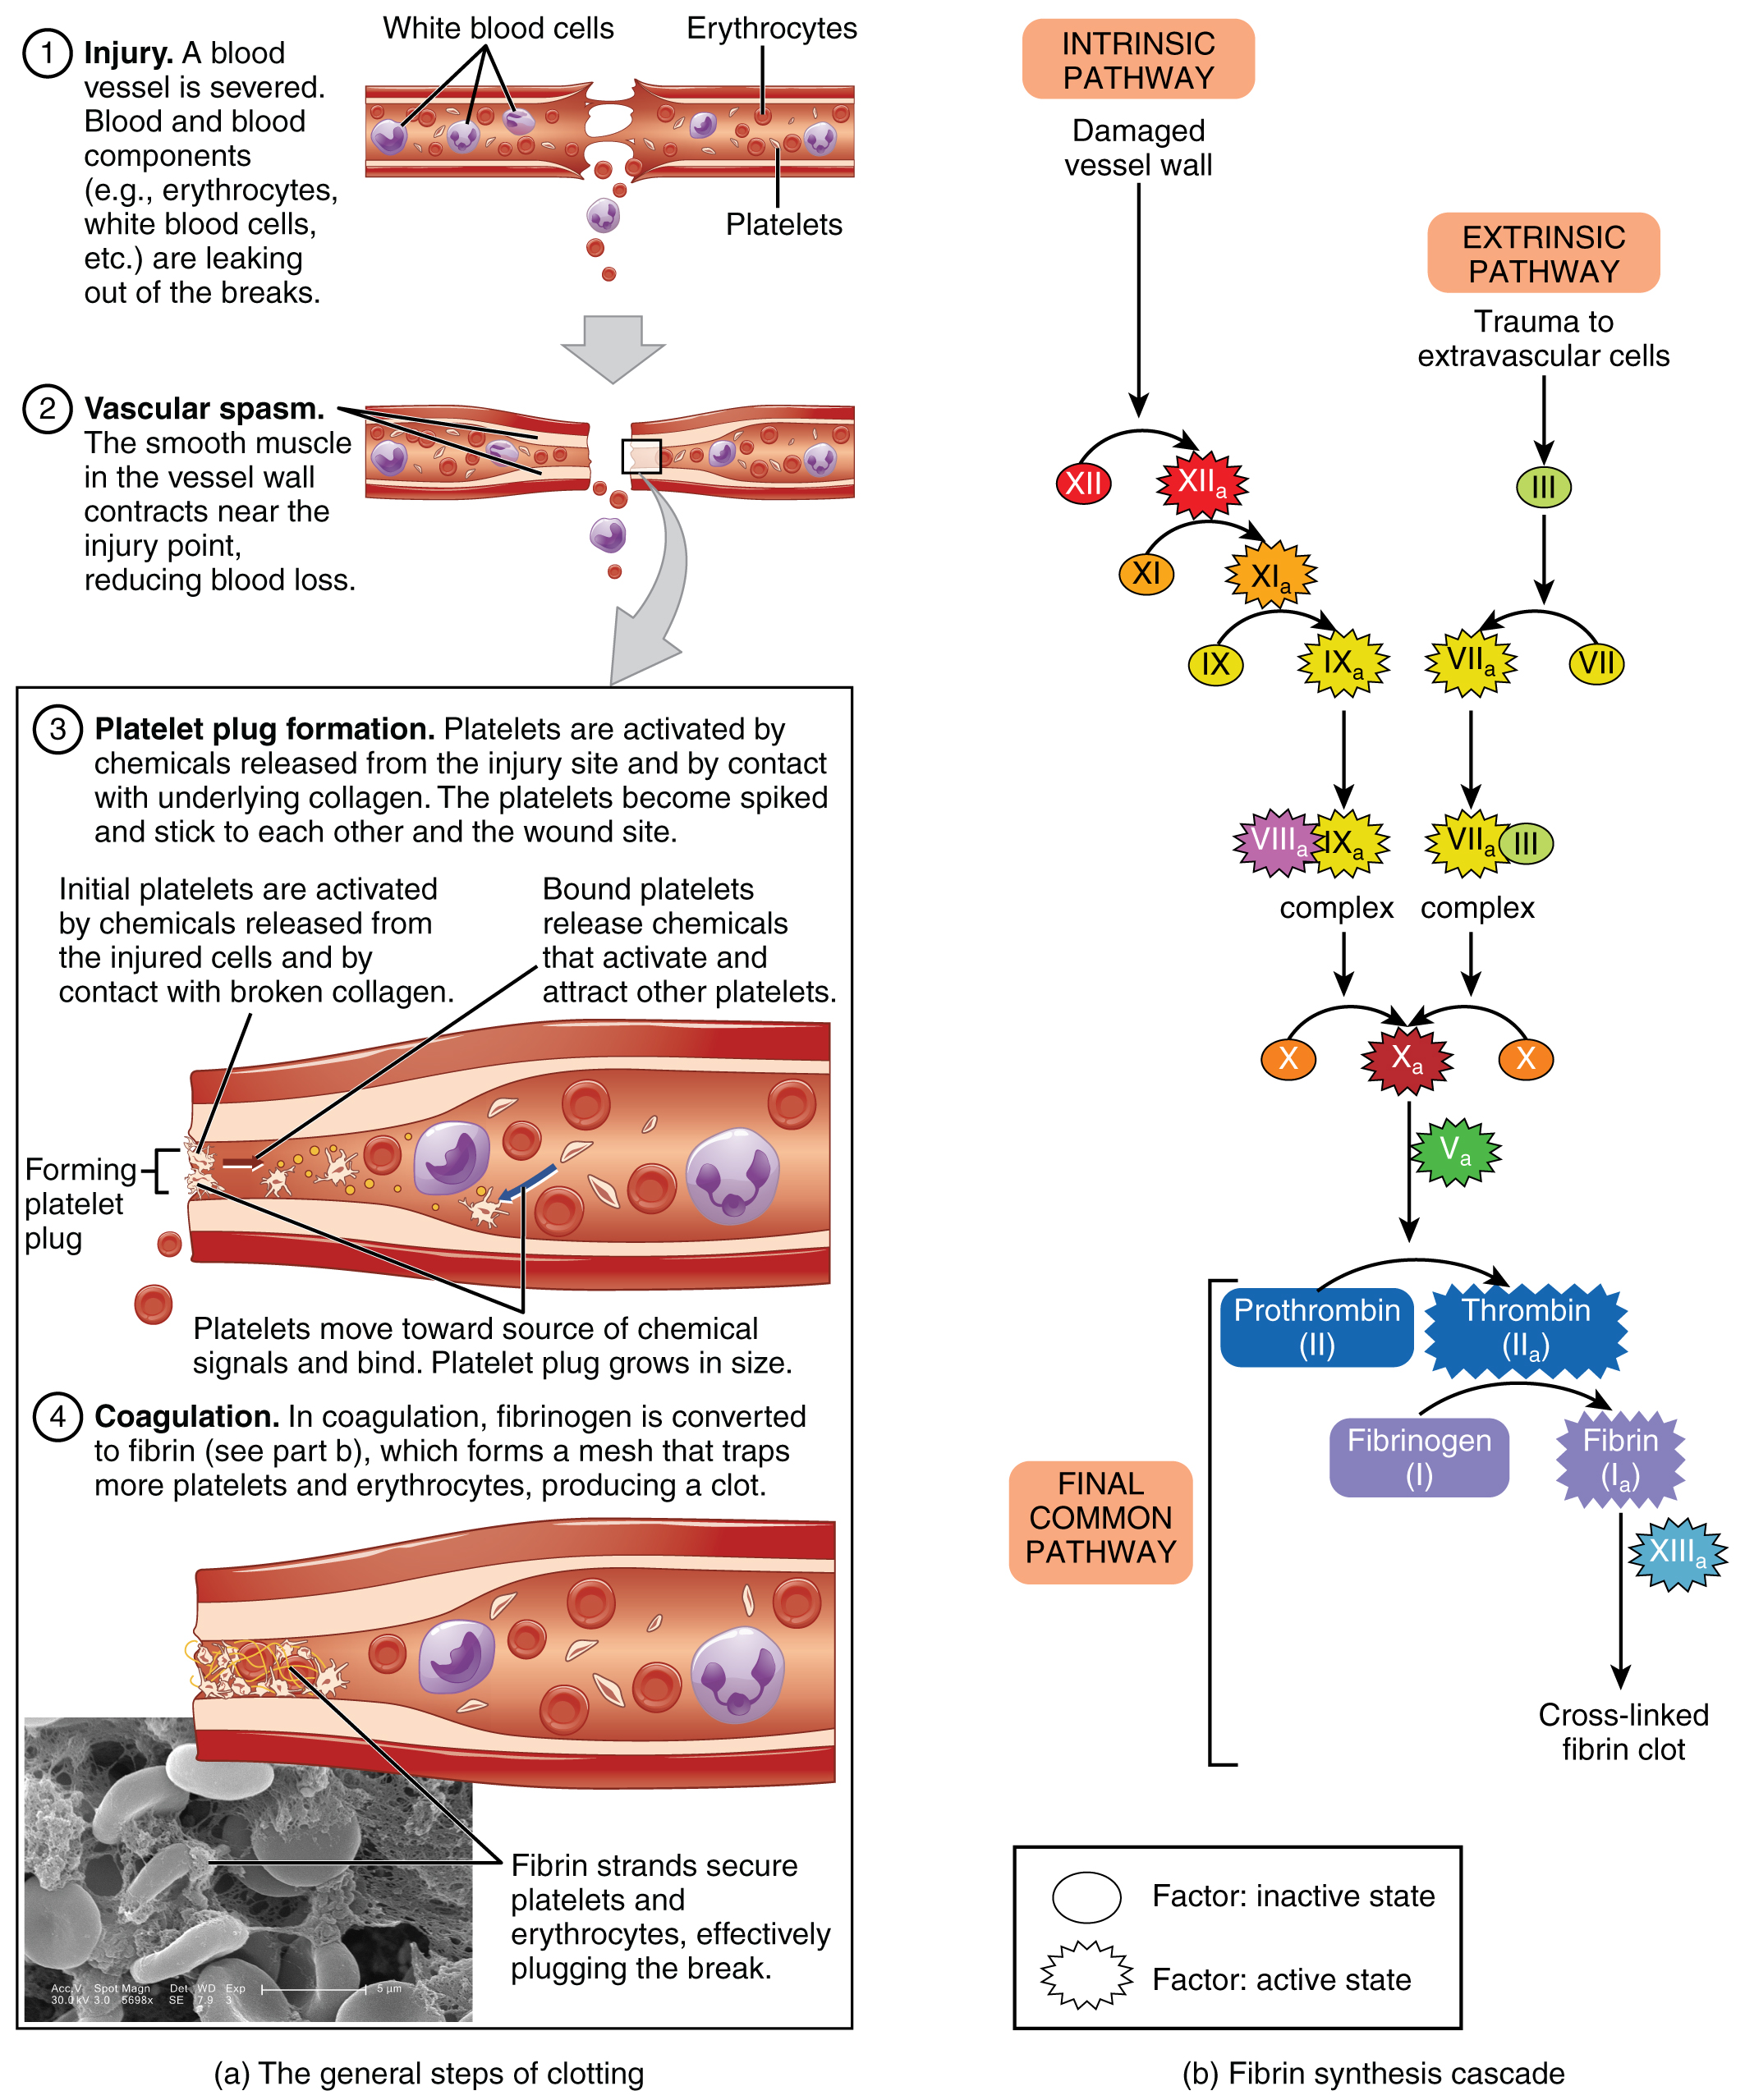 This figure details the steps in the clotting of blood. Each step is shown along with a detailed text box describing the steps on the left. On the right, a signaling pathway shows the different chemical signals involved in the clotting process.